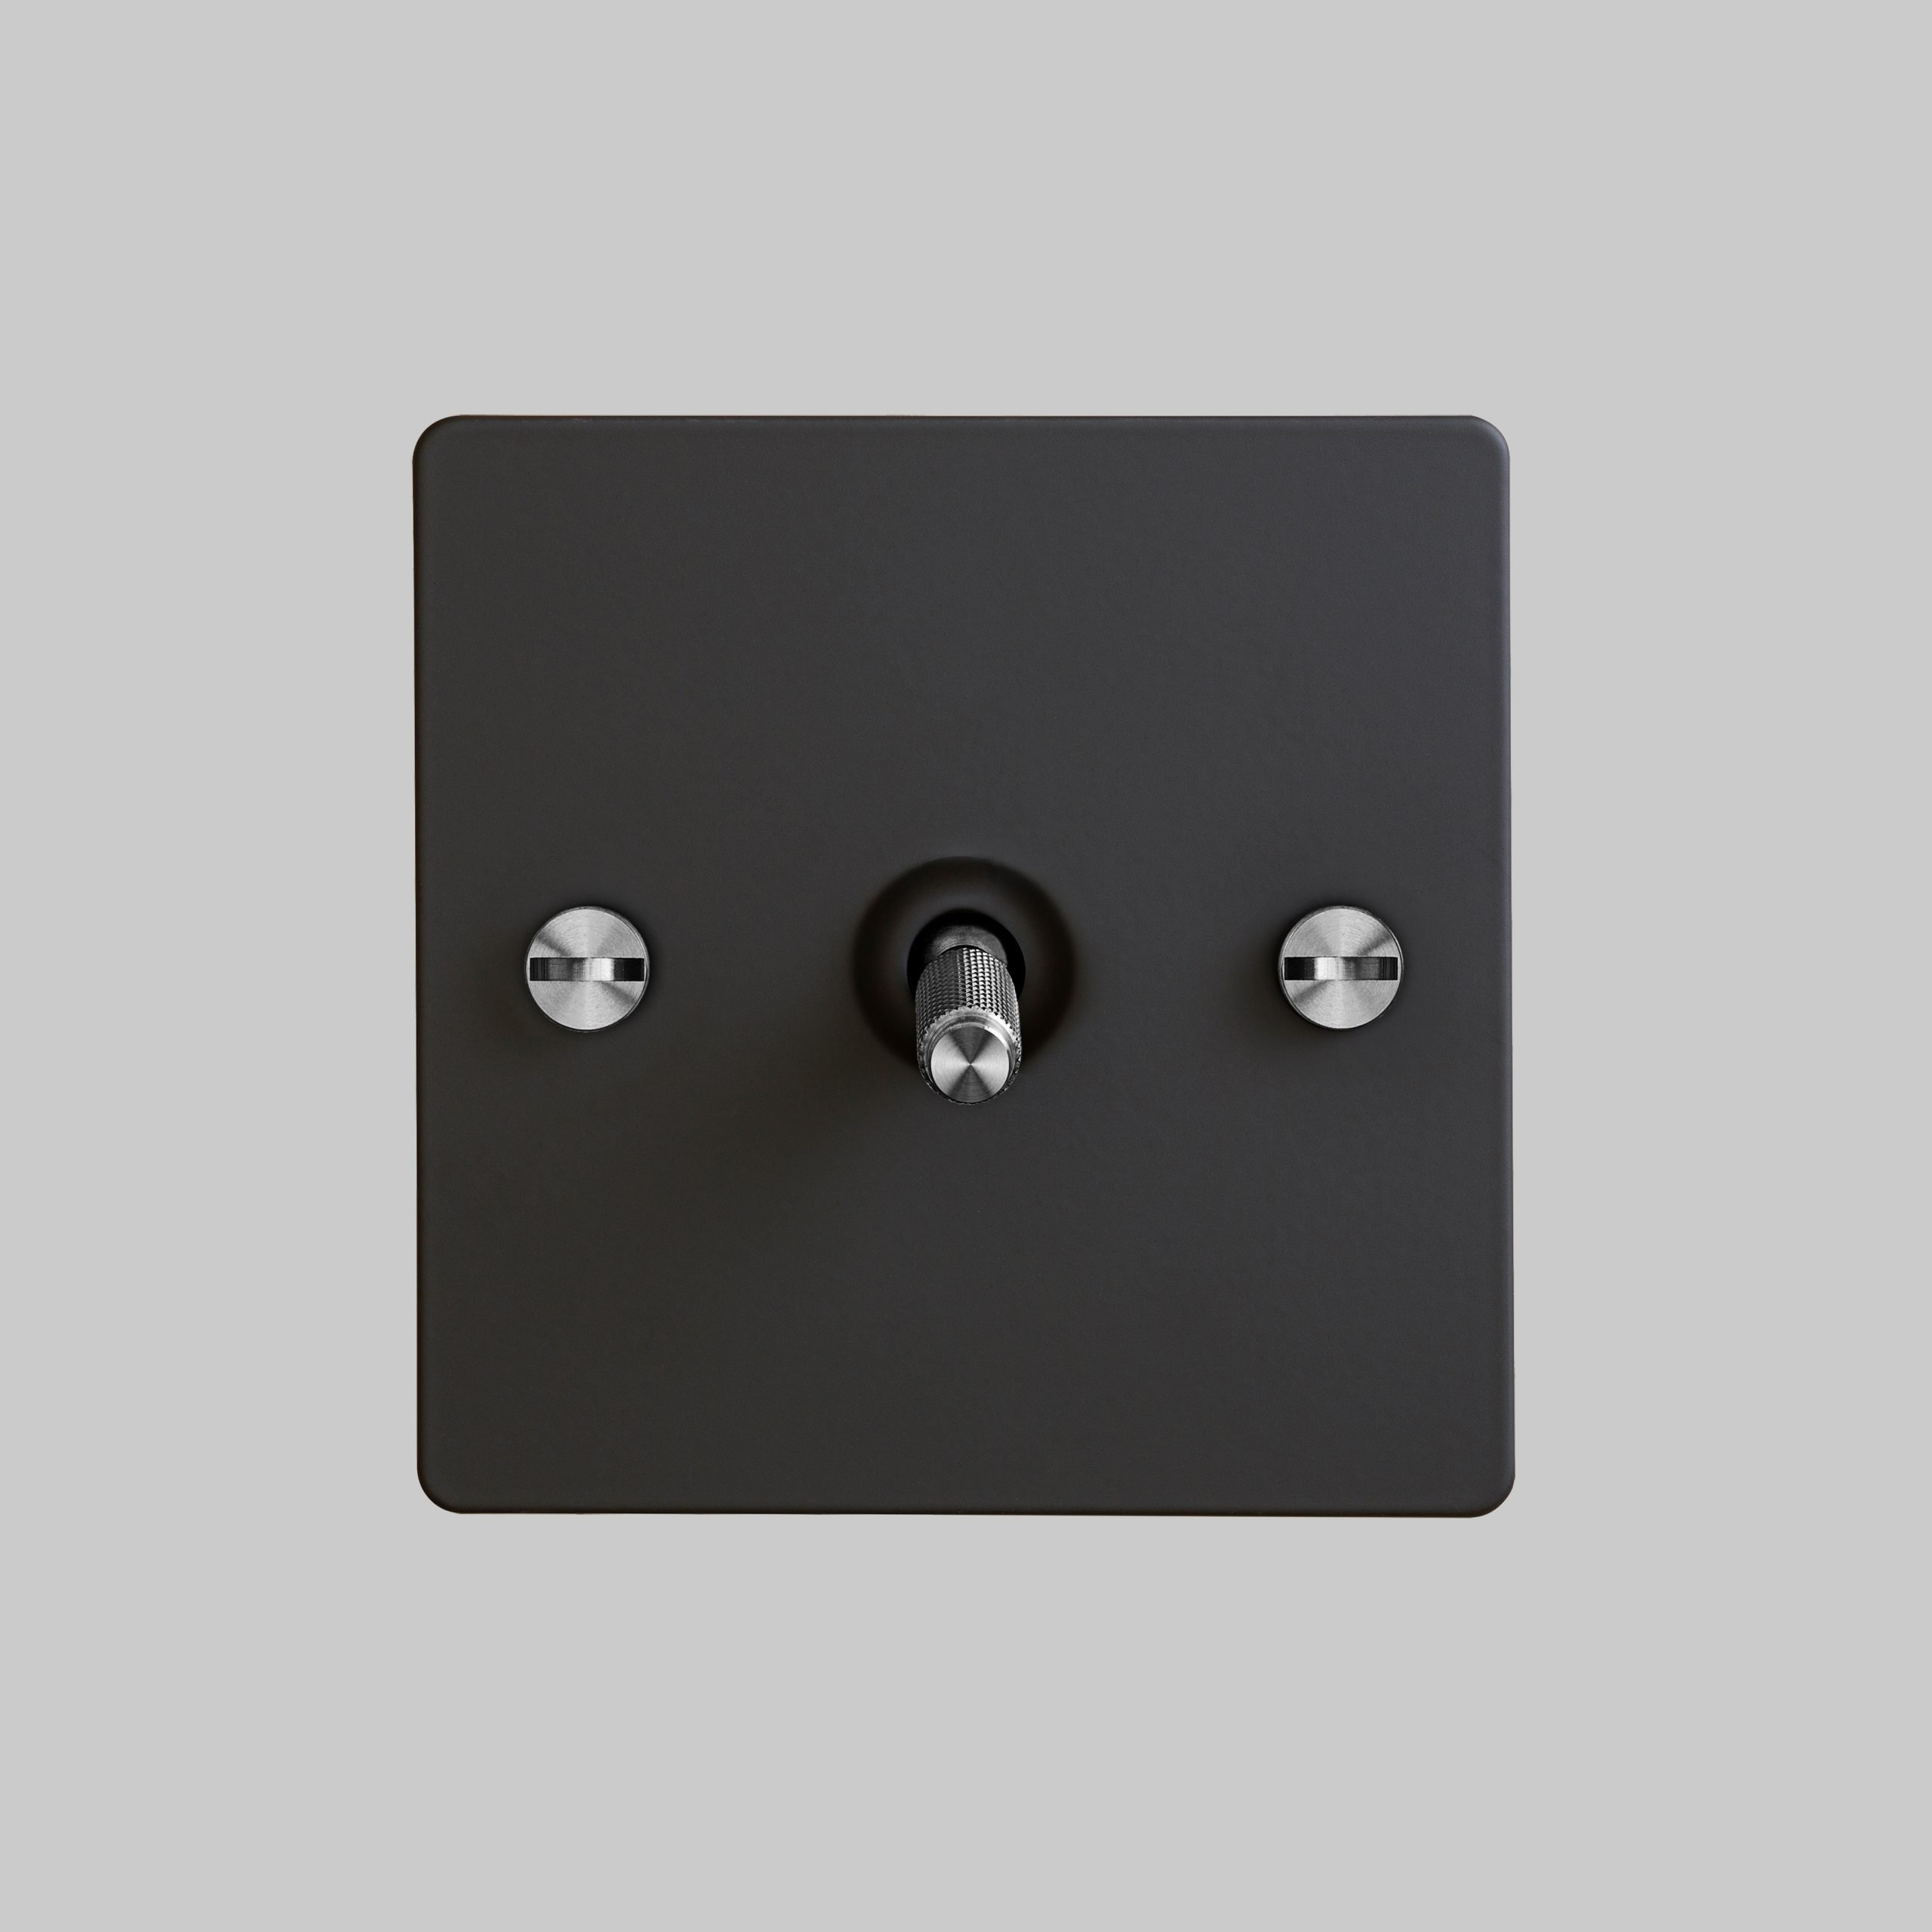 2. 1G_Toggle_Front_Black_Steel